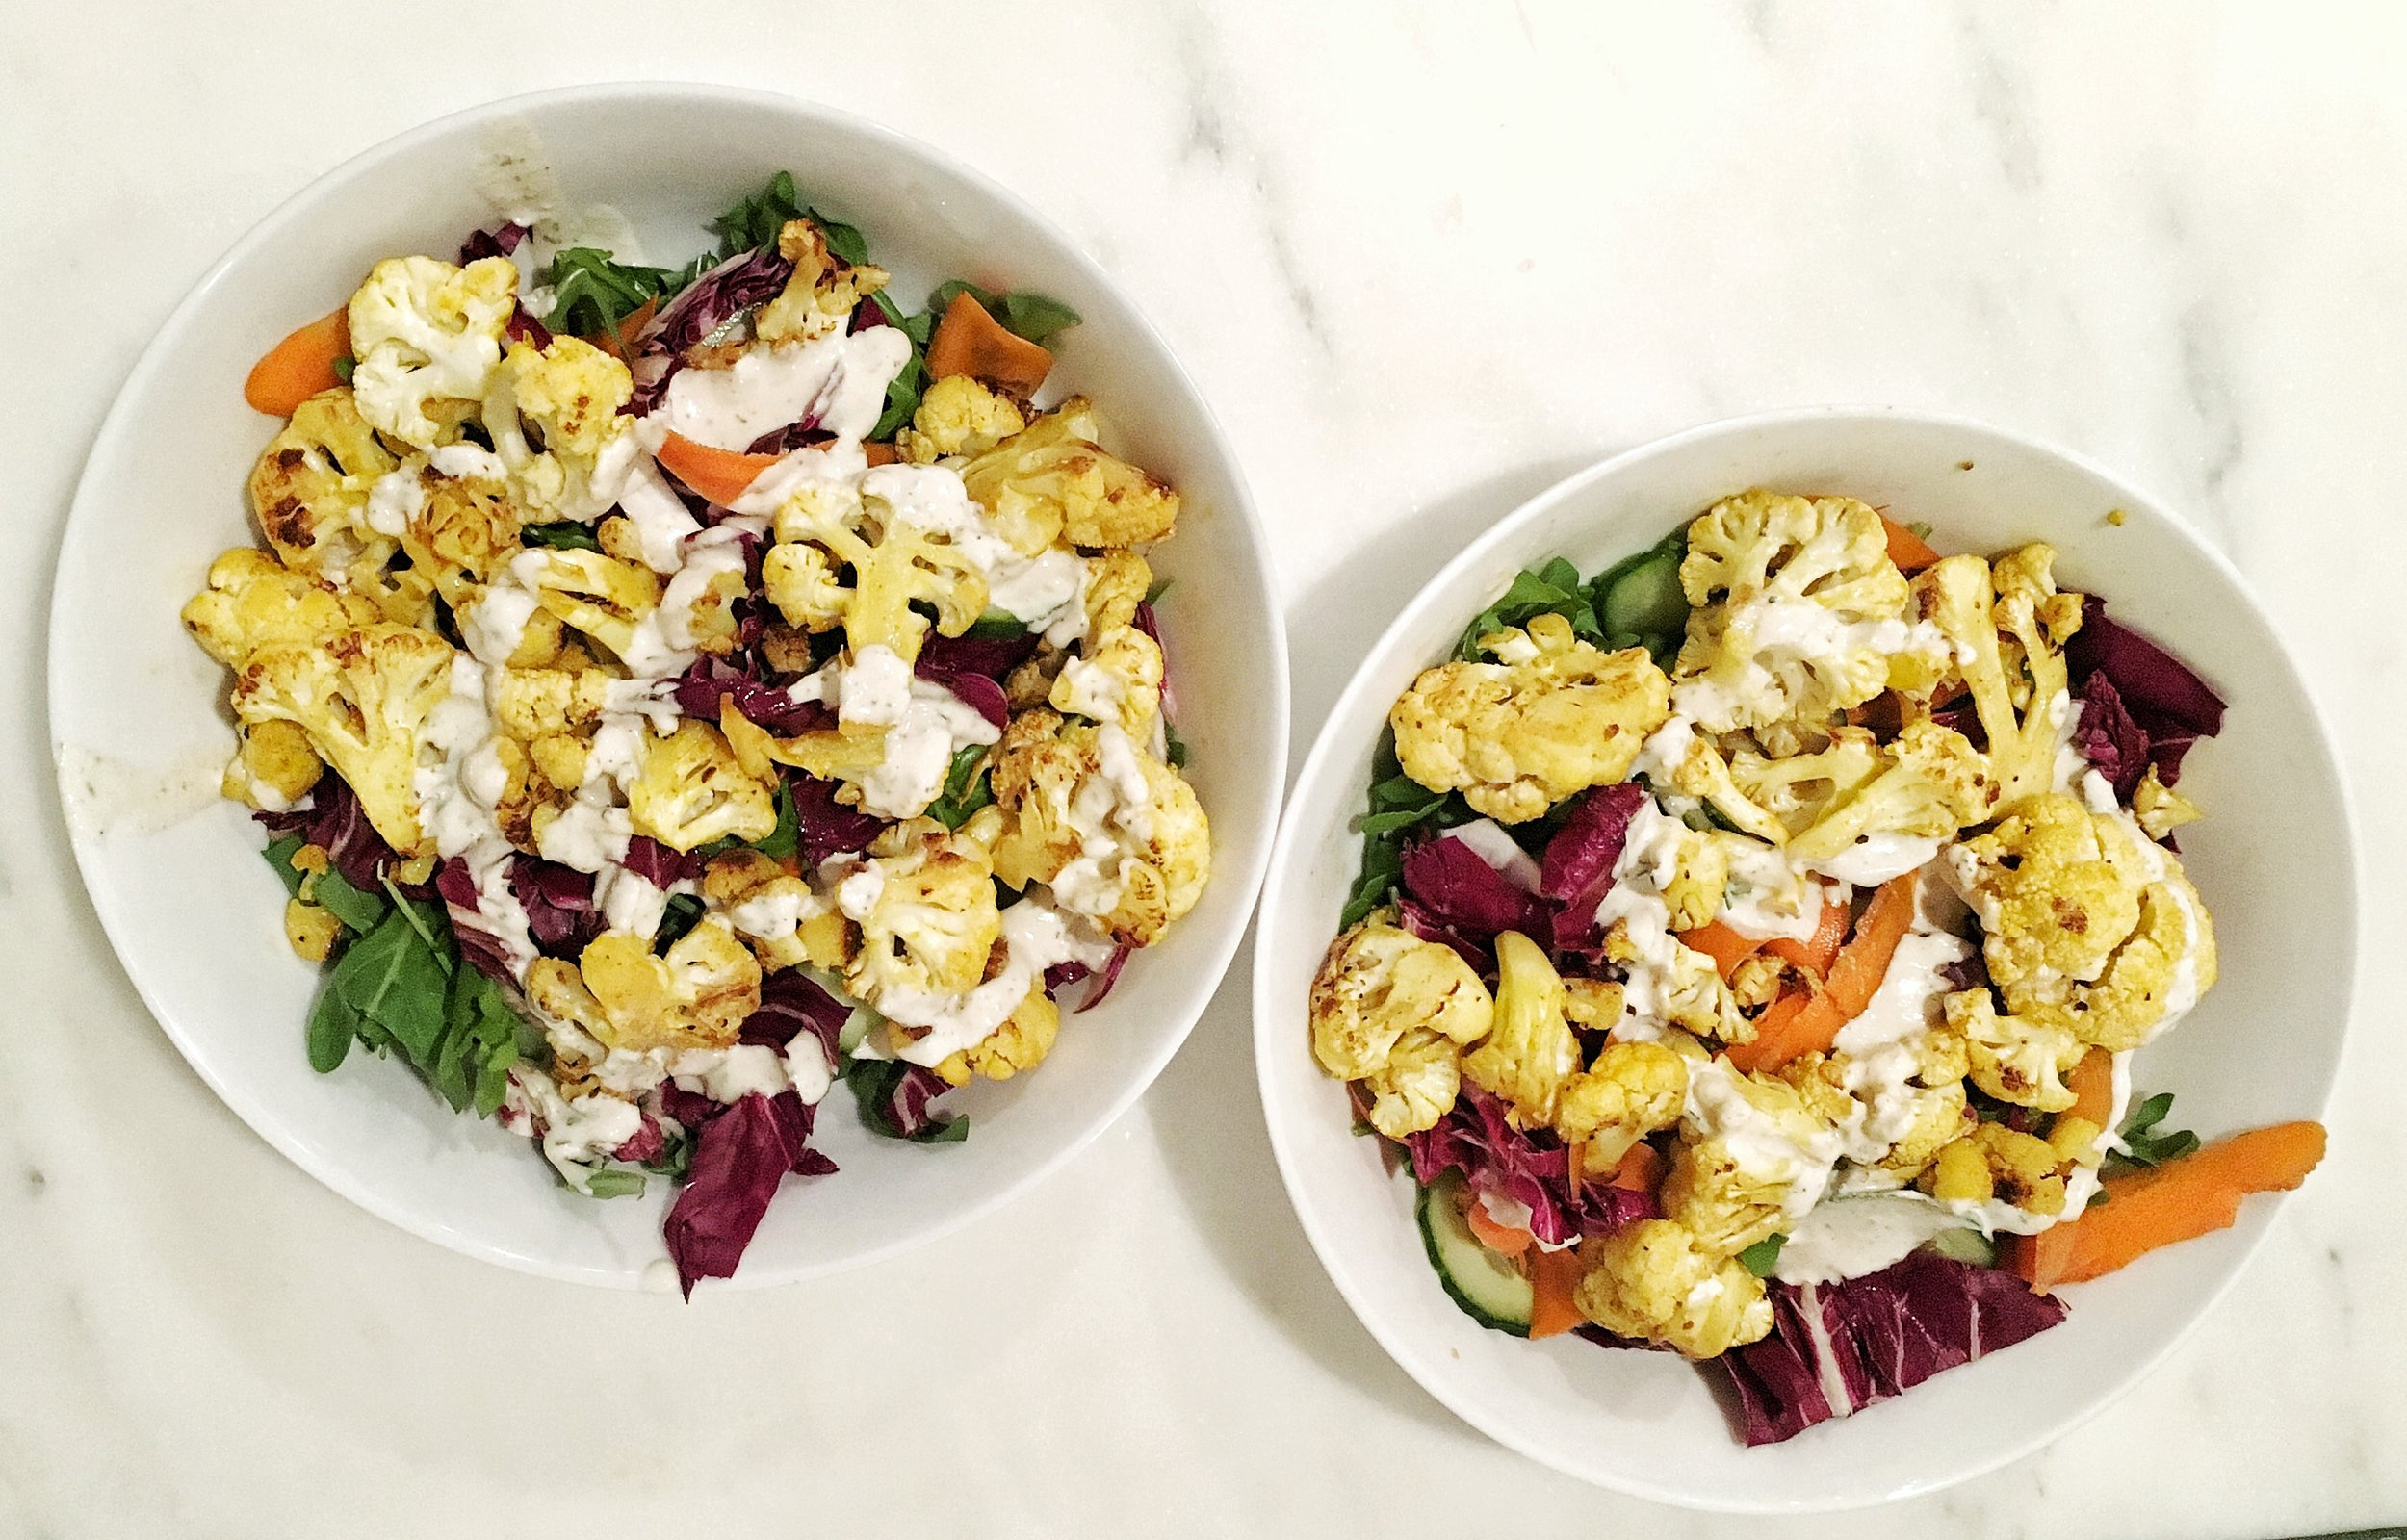 Prep the salad and dressing in advance for a quick and easy weeknight meal